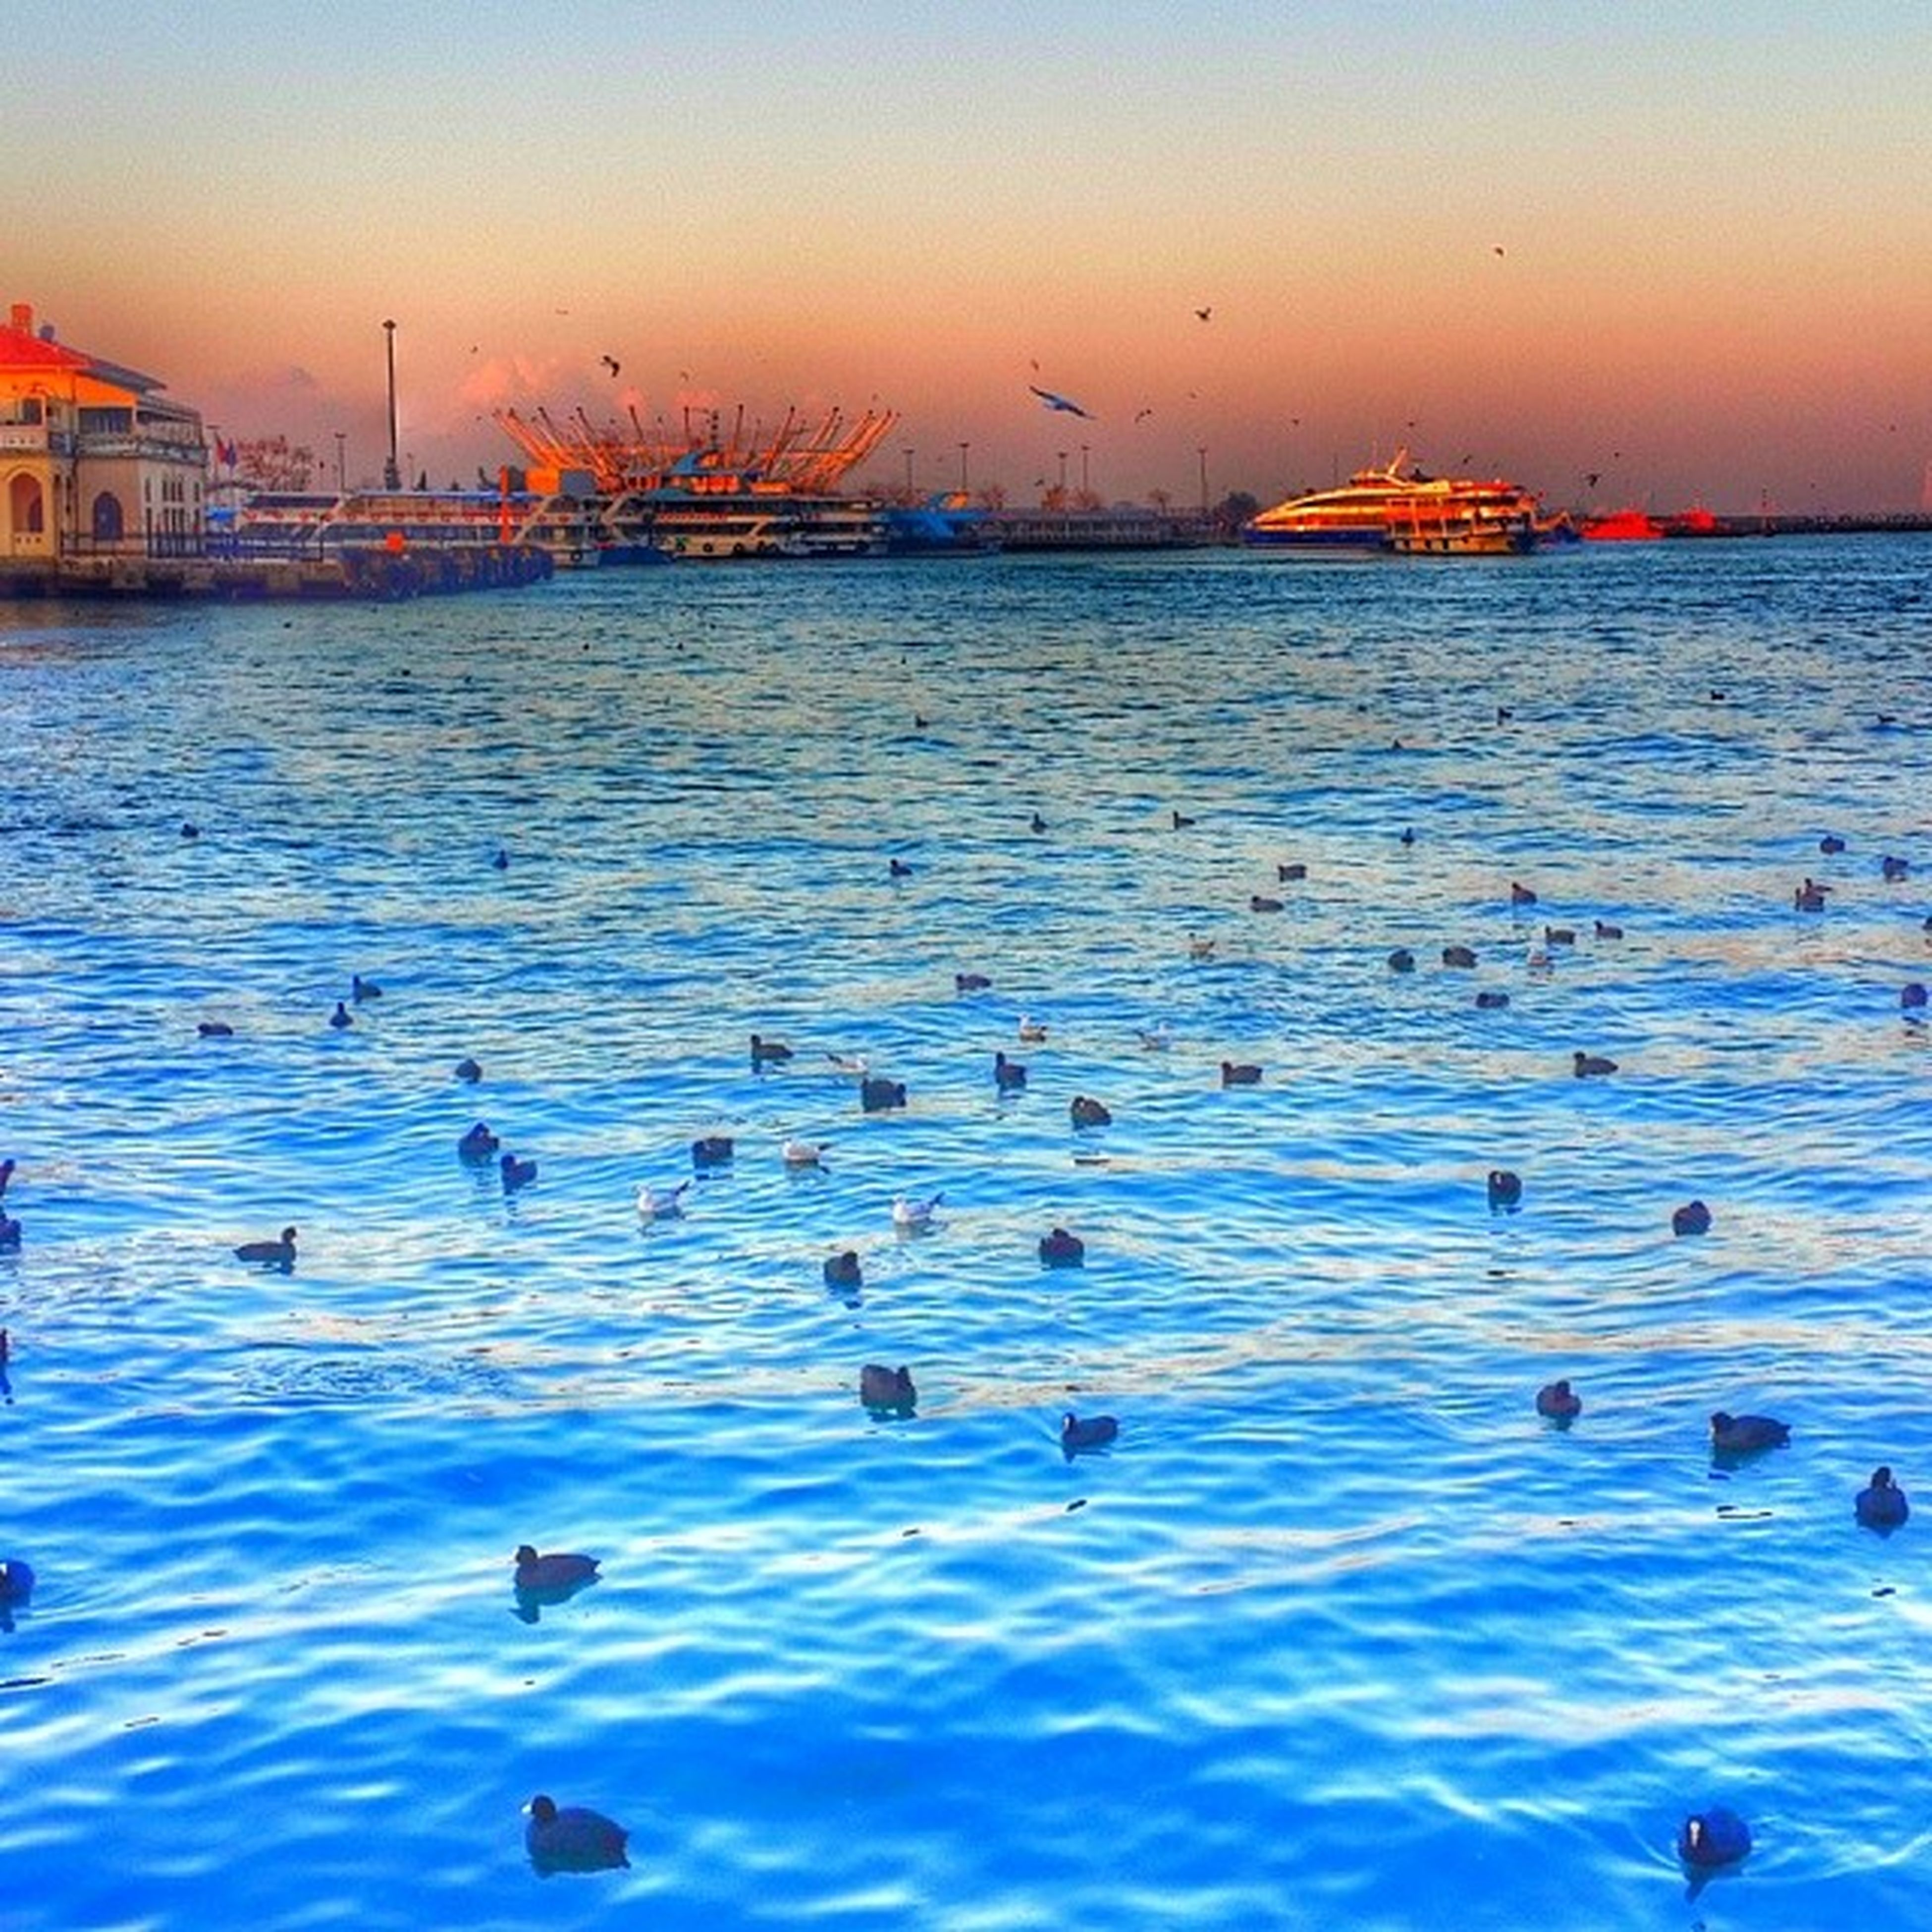 water, bird, sunset, animal themes, animals in the wild, sea, wildlife, waterfront, sky, rippled, harbor, nature, nautical vessel, built structure, flock of birds, beauty in nature, swimming, architecture, scenics